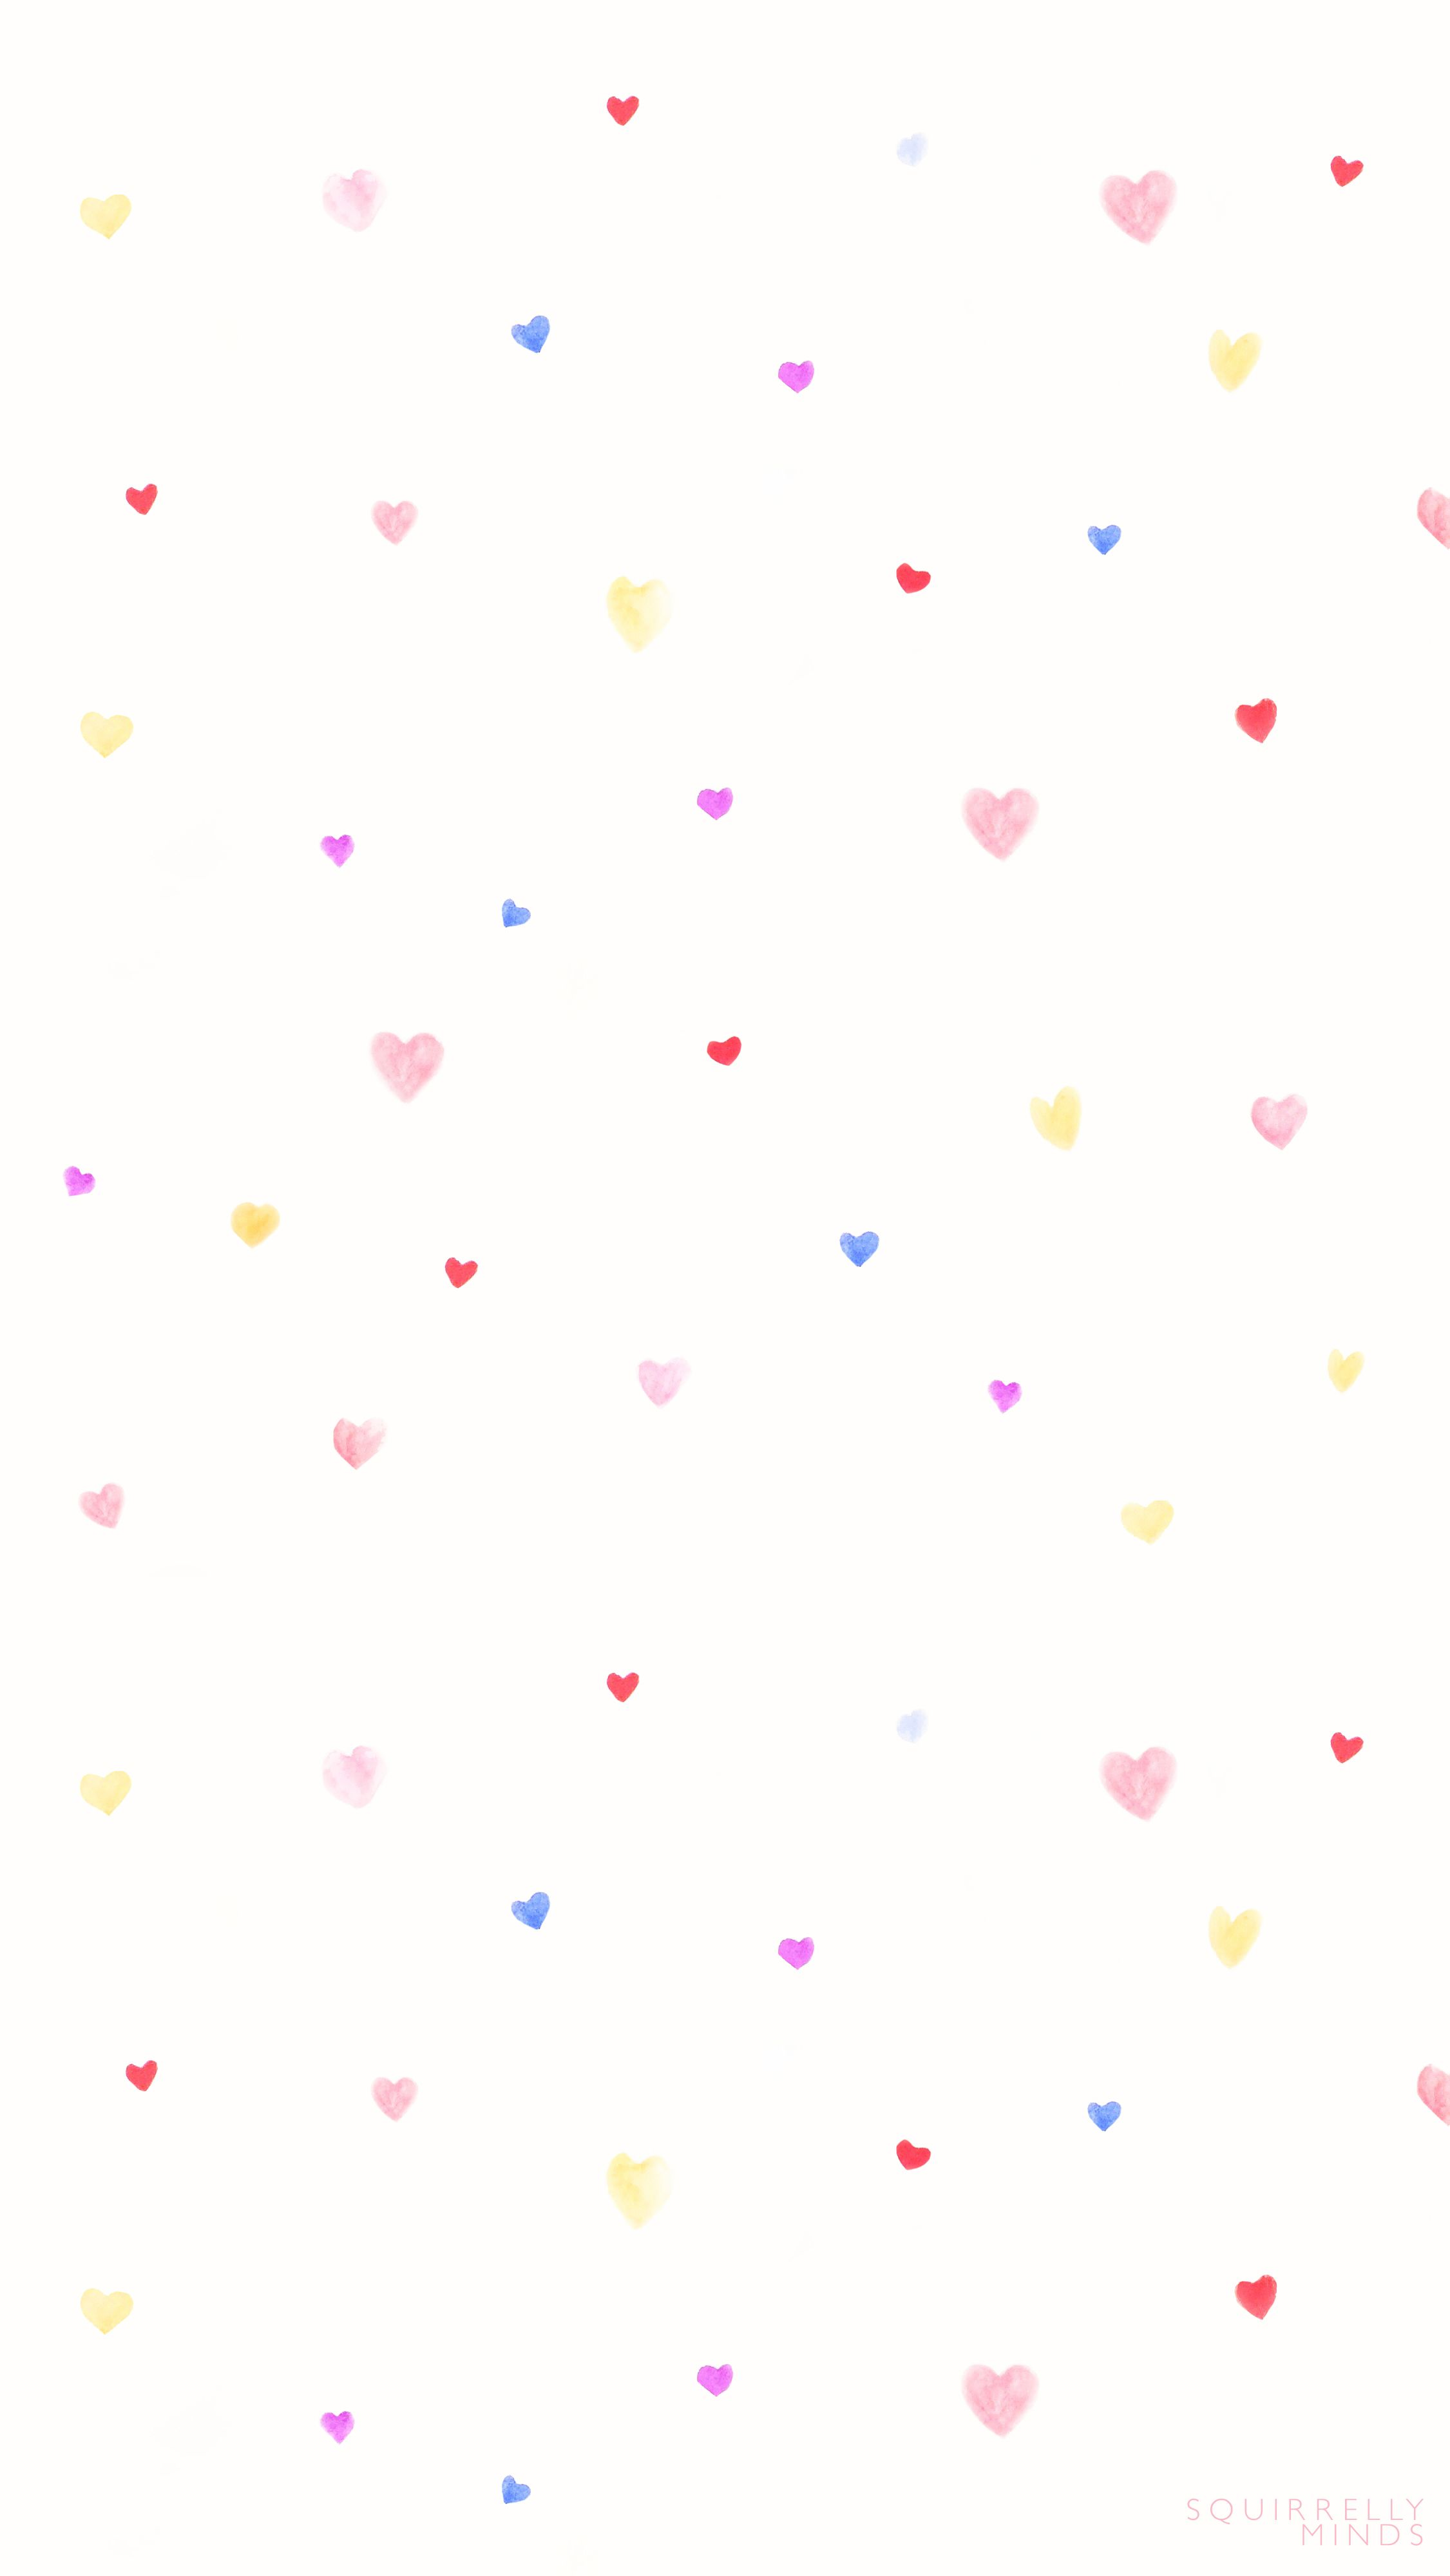 Watercolor Hearts Valentine's Day Wallpaper Downloads - Squirrelly Minds